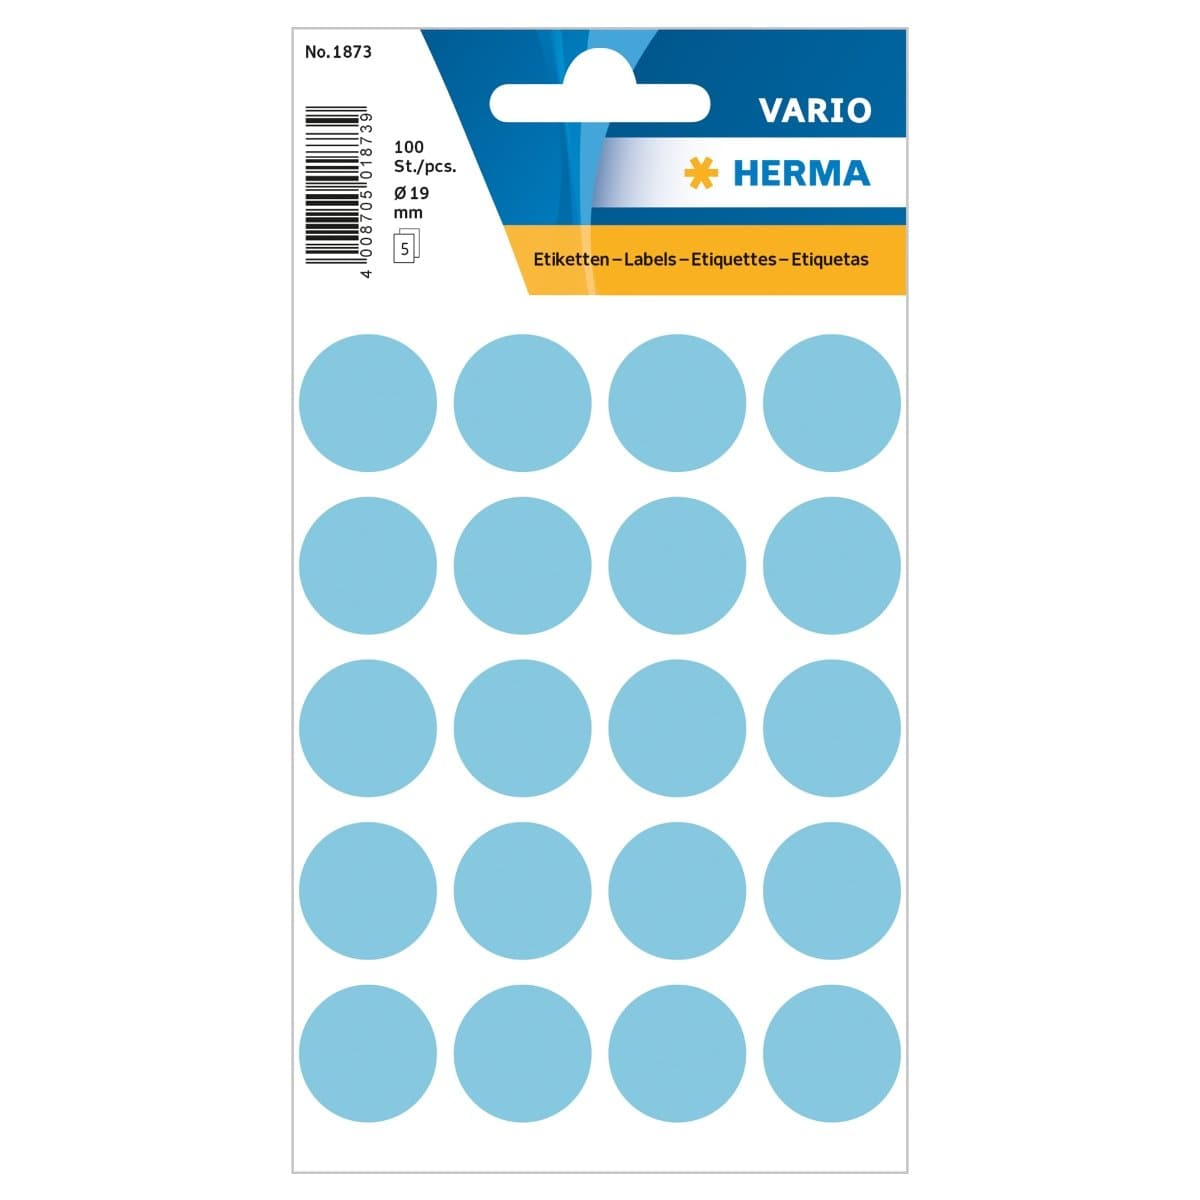 Herma Vario Sticker Color Dots, 19 mm, 100/pack, Blue